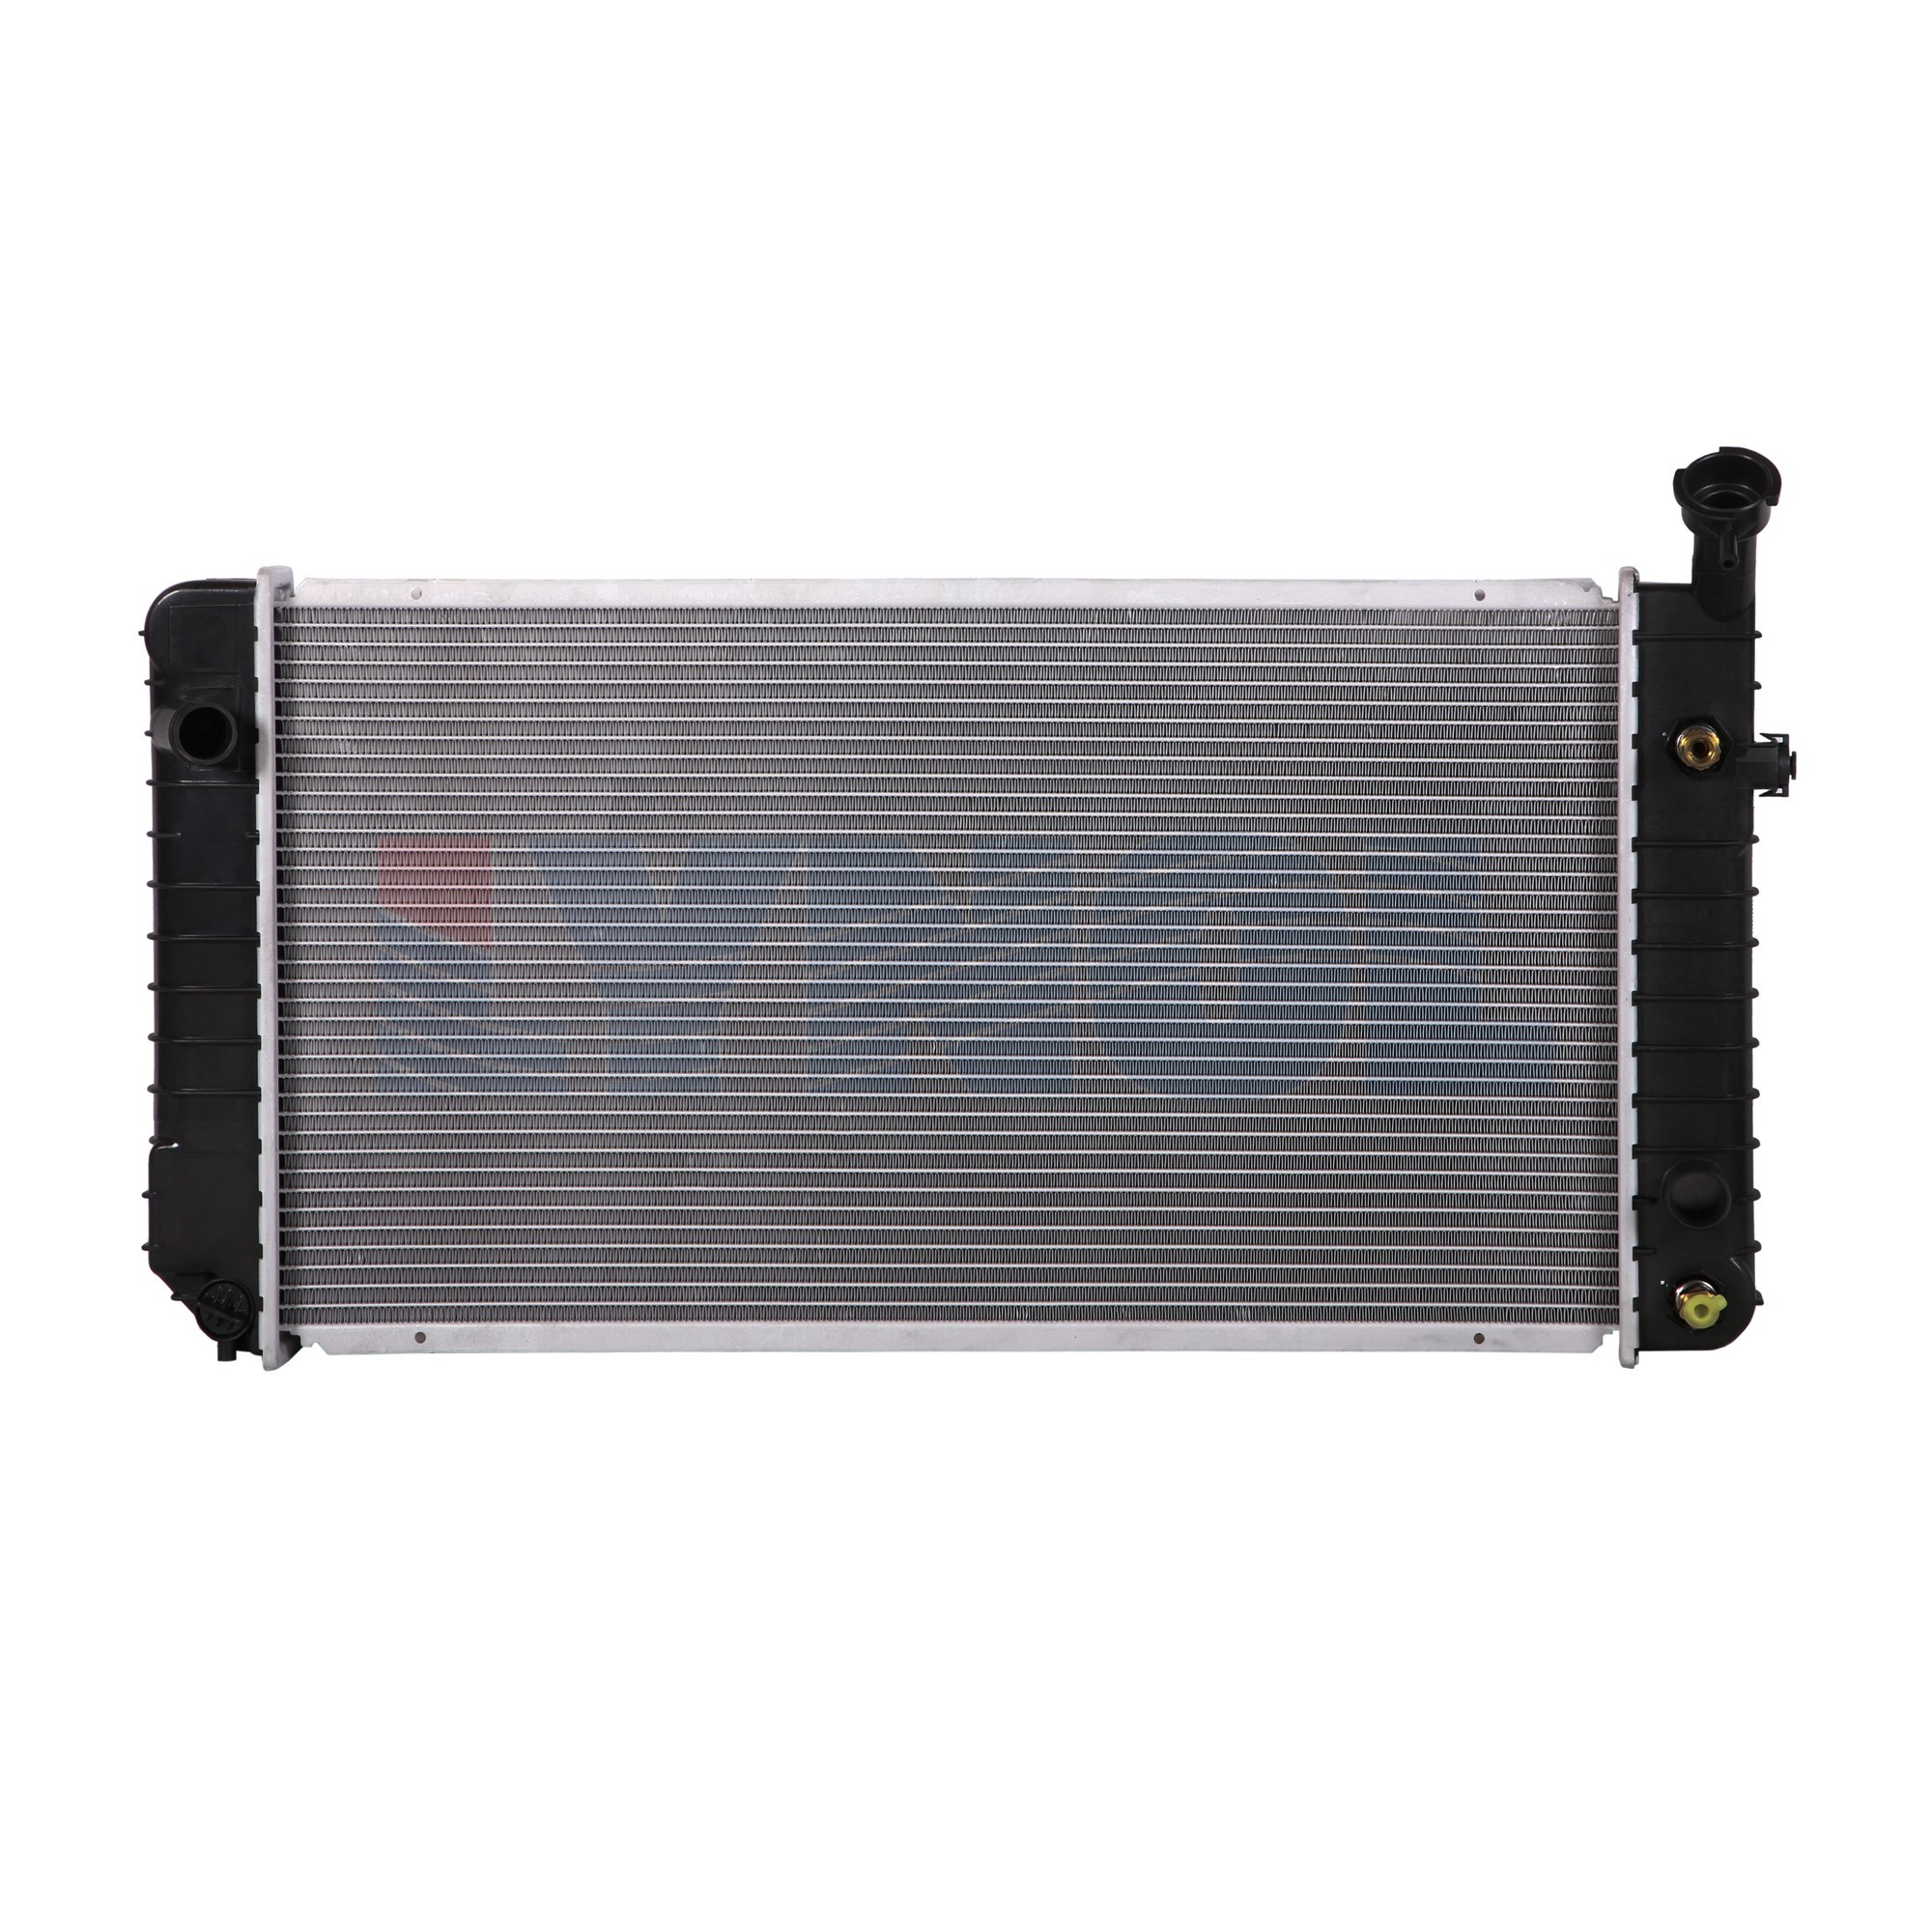 LR1206 - RADIATOR  - 91-93 Buick Regal, Chevrolet Lumina, Oldsmobile Cutlass Supreme, Pontiac Grand Prix